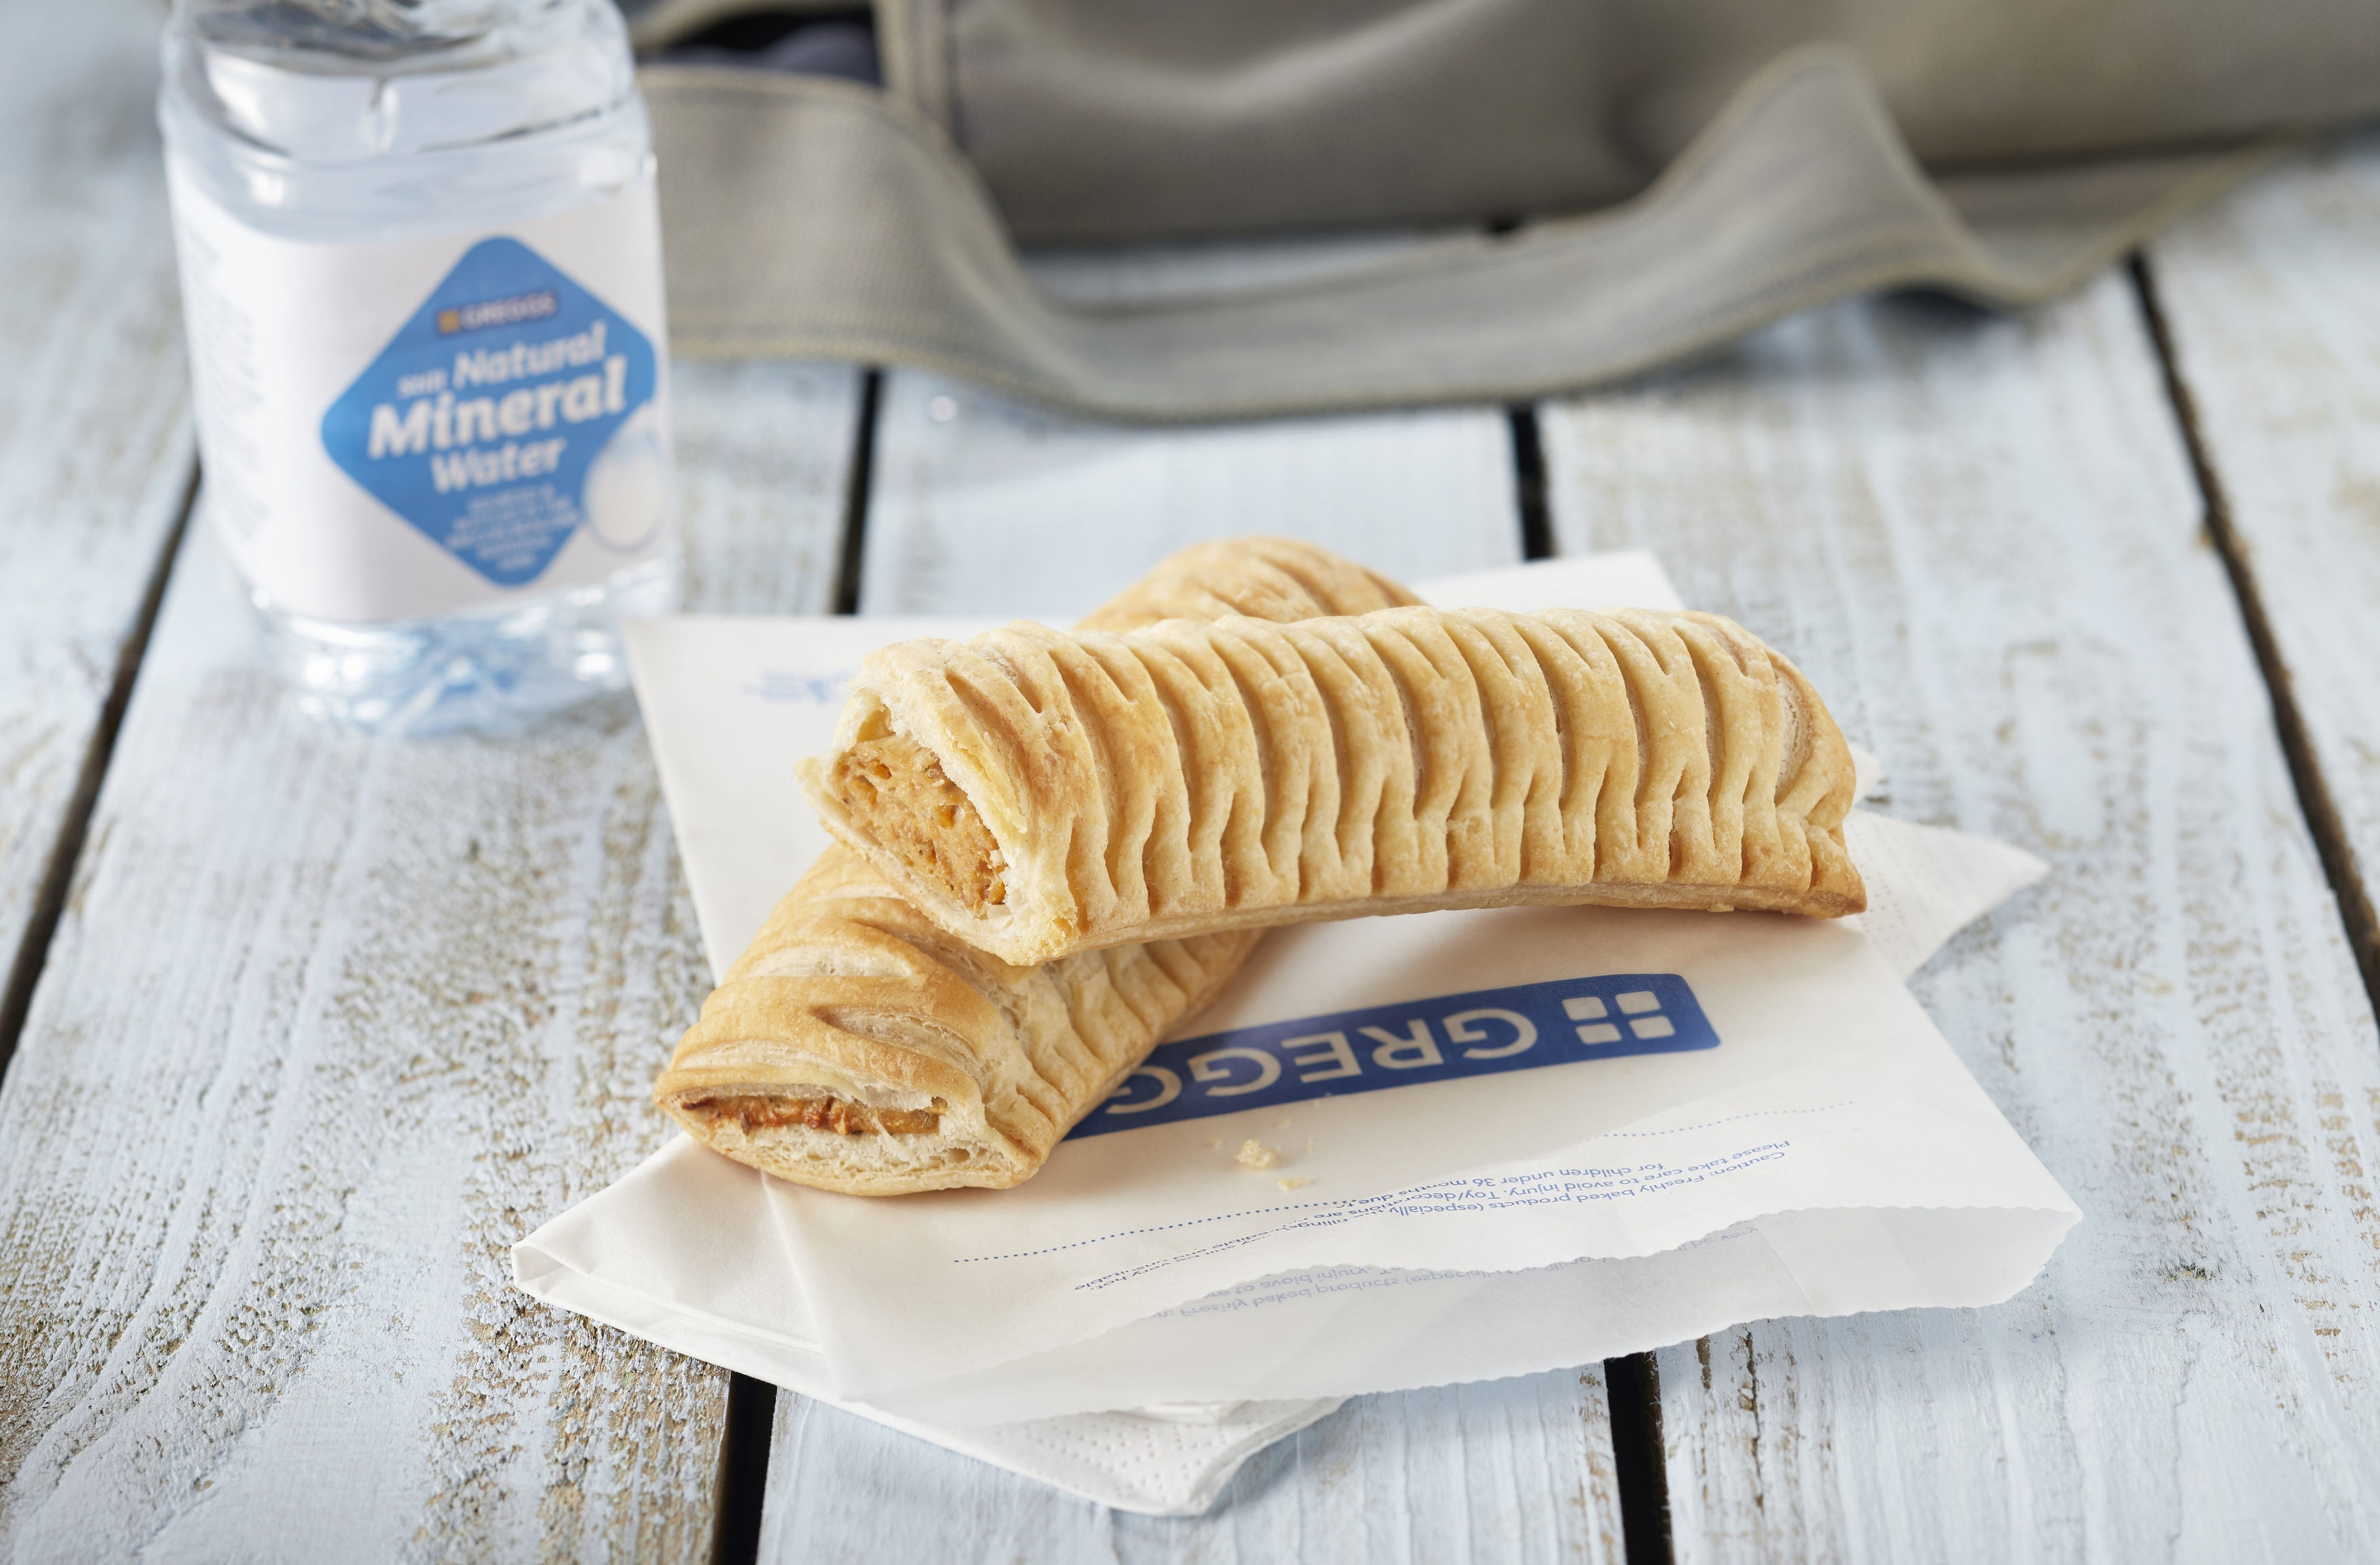 Greggs' new vegan sausage roll which will go on sale from Thursday (Greggs/PA Wire)